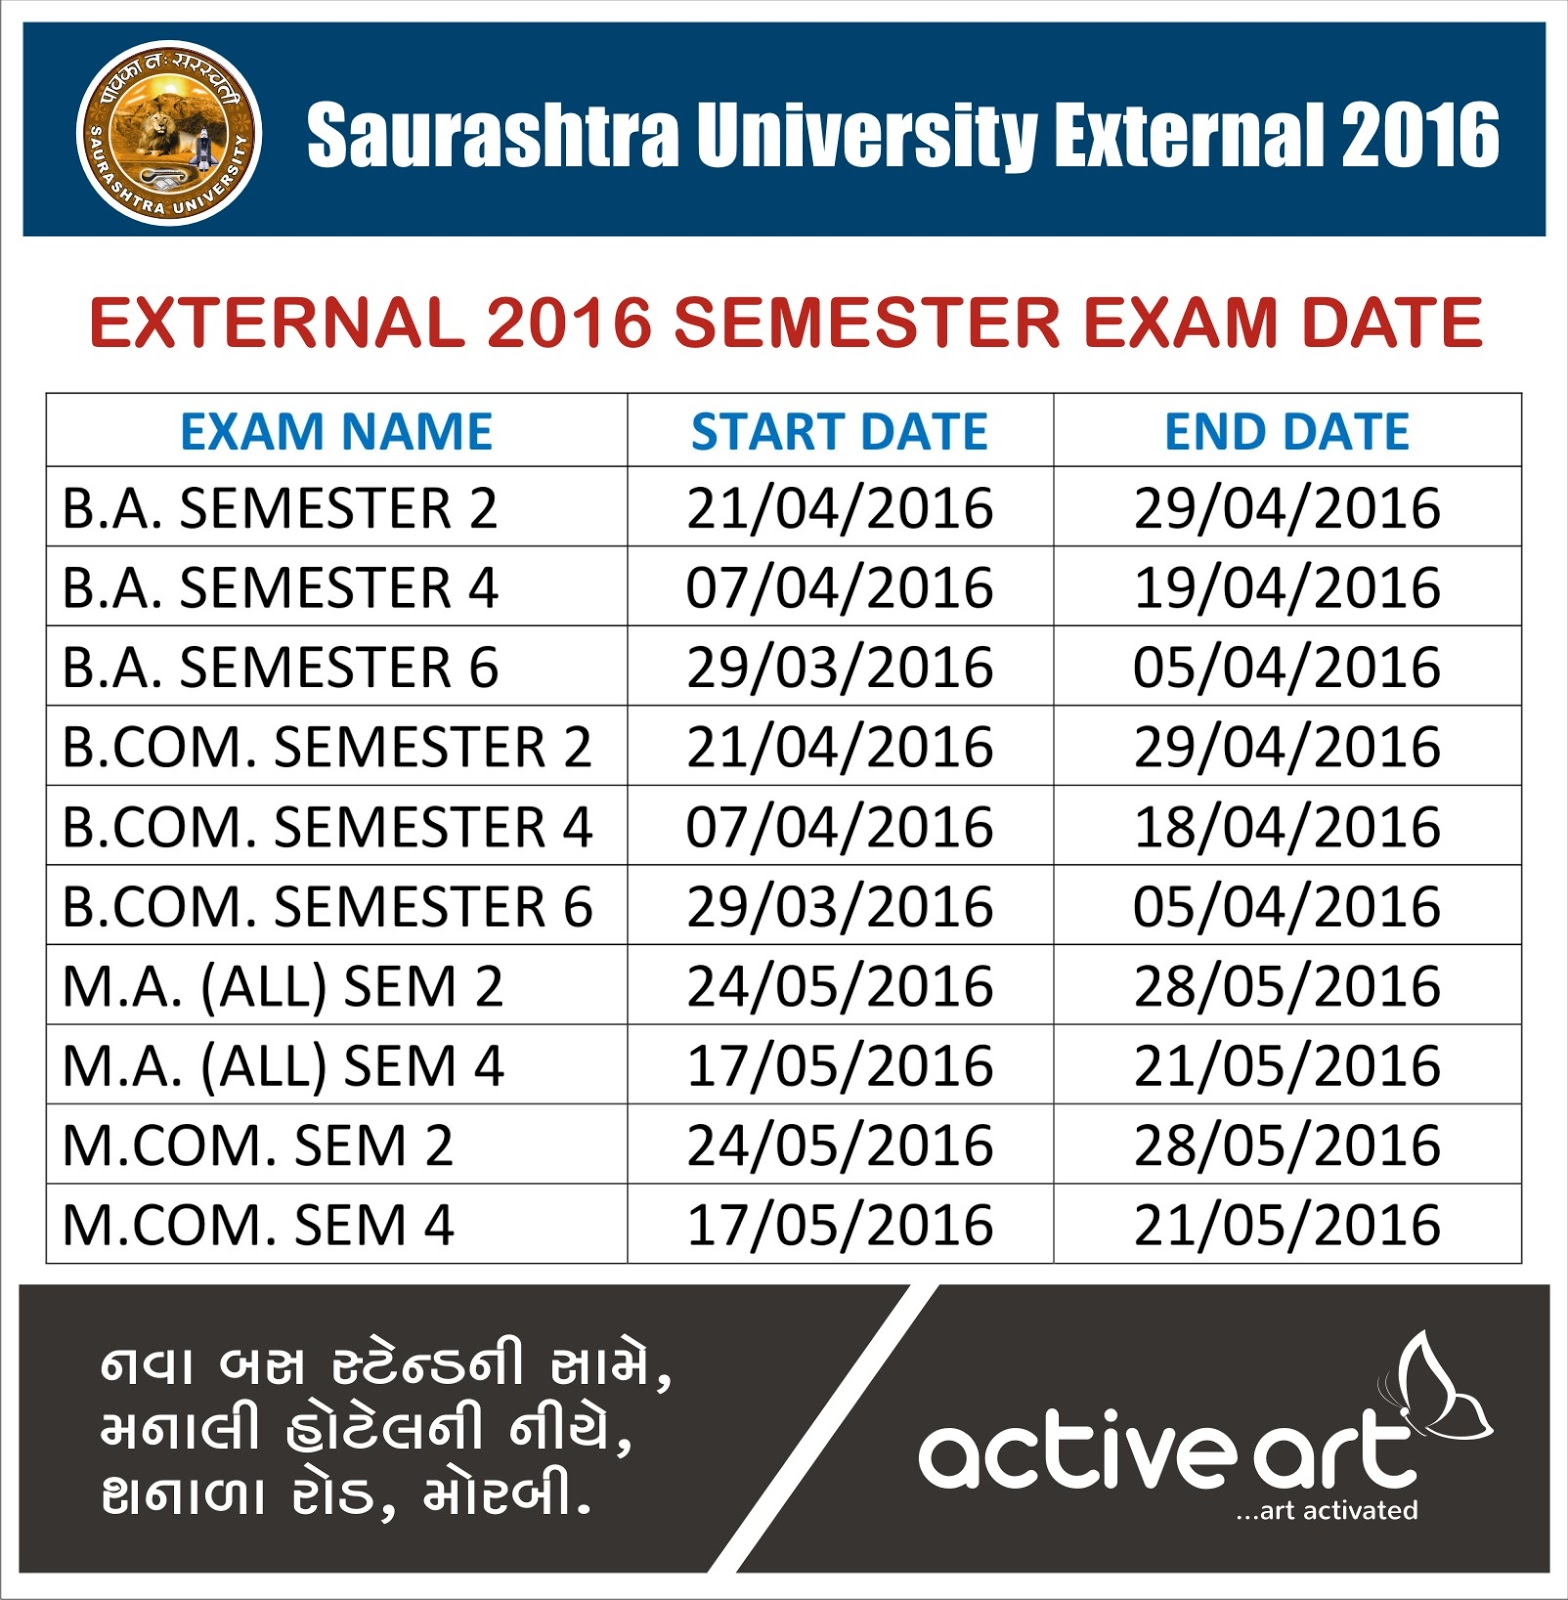 Exam%2BDate Online Degree Form Saurashtra University on tourist places, region gujarat, darshan places, university grade, difference between gujarat, district map, university campus, kathiawar peninsula or, gramin bank passbook,